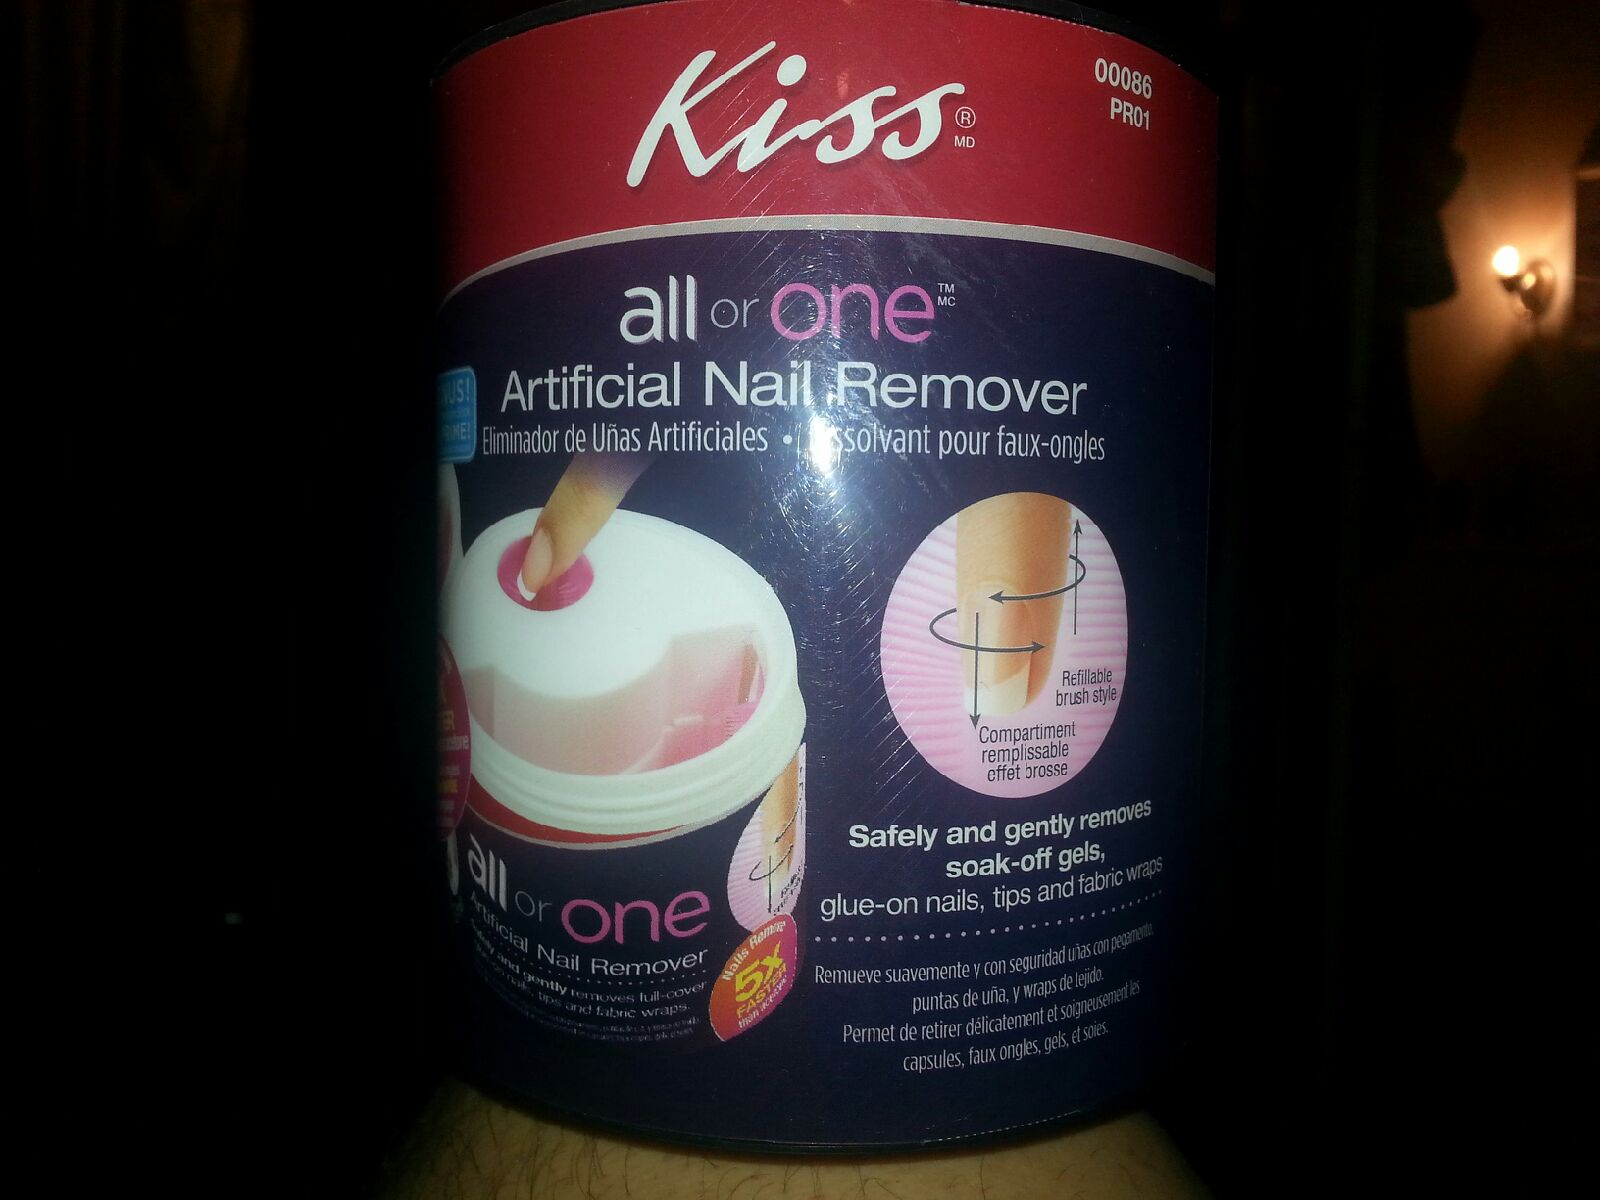 Kiss All or One Artificial nail remover | Nails done by a Blimbo